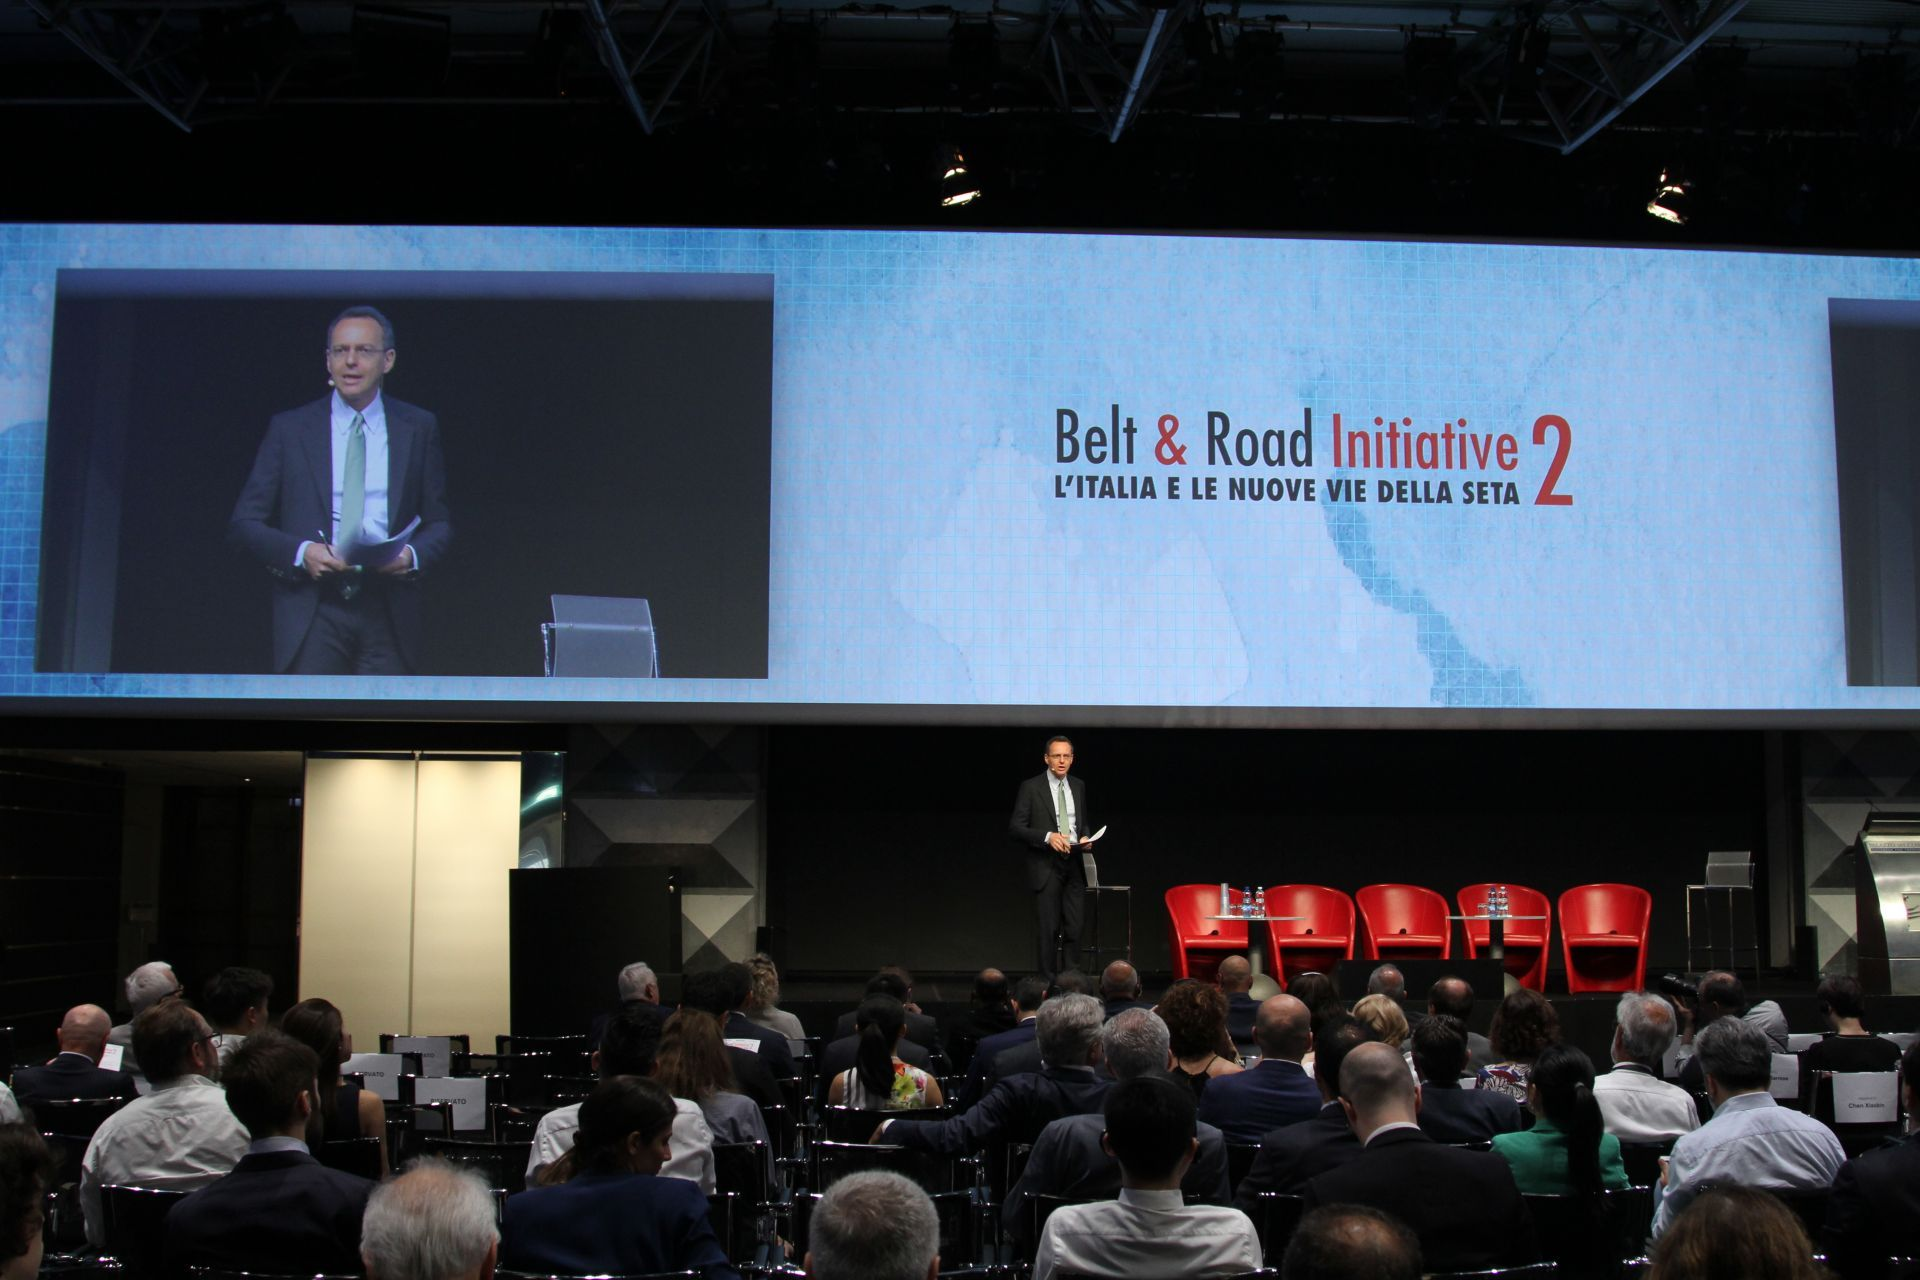 Italian firms keen to participate in Belt & Road for win-win results